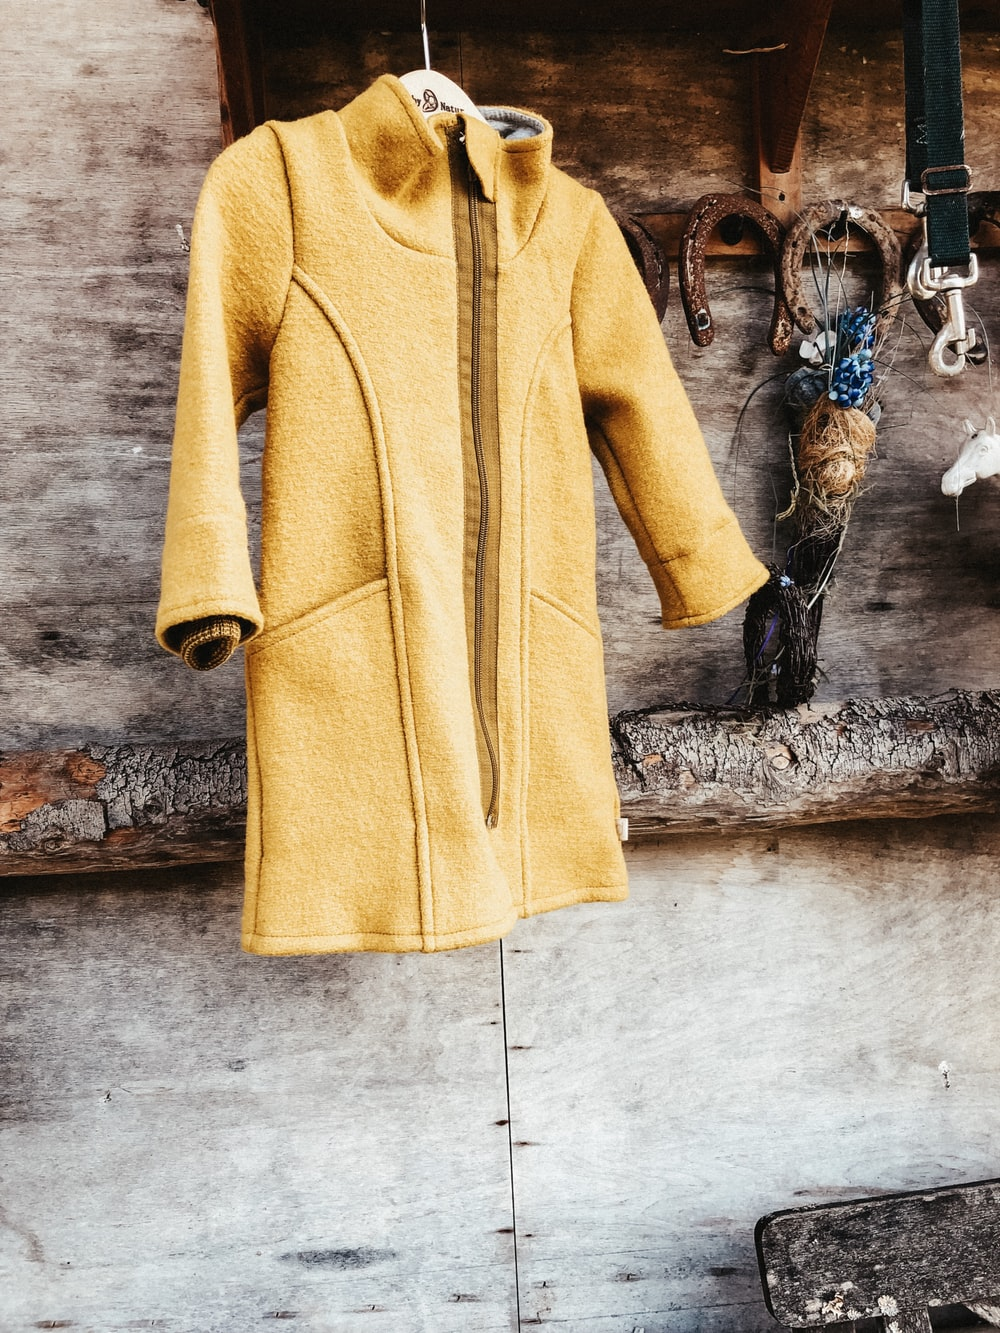 hanged yellow coat